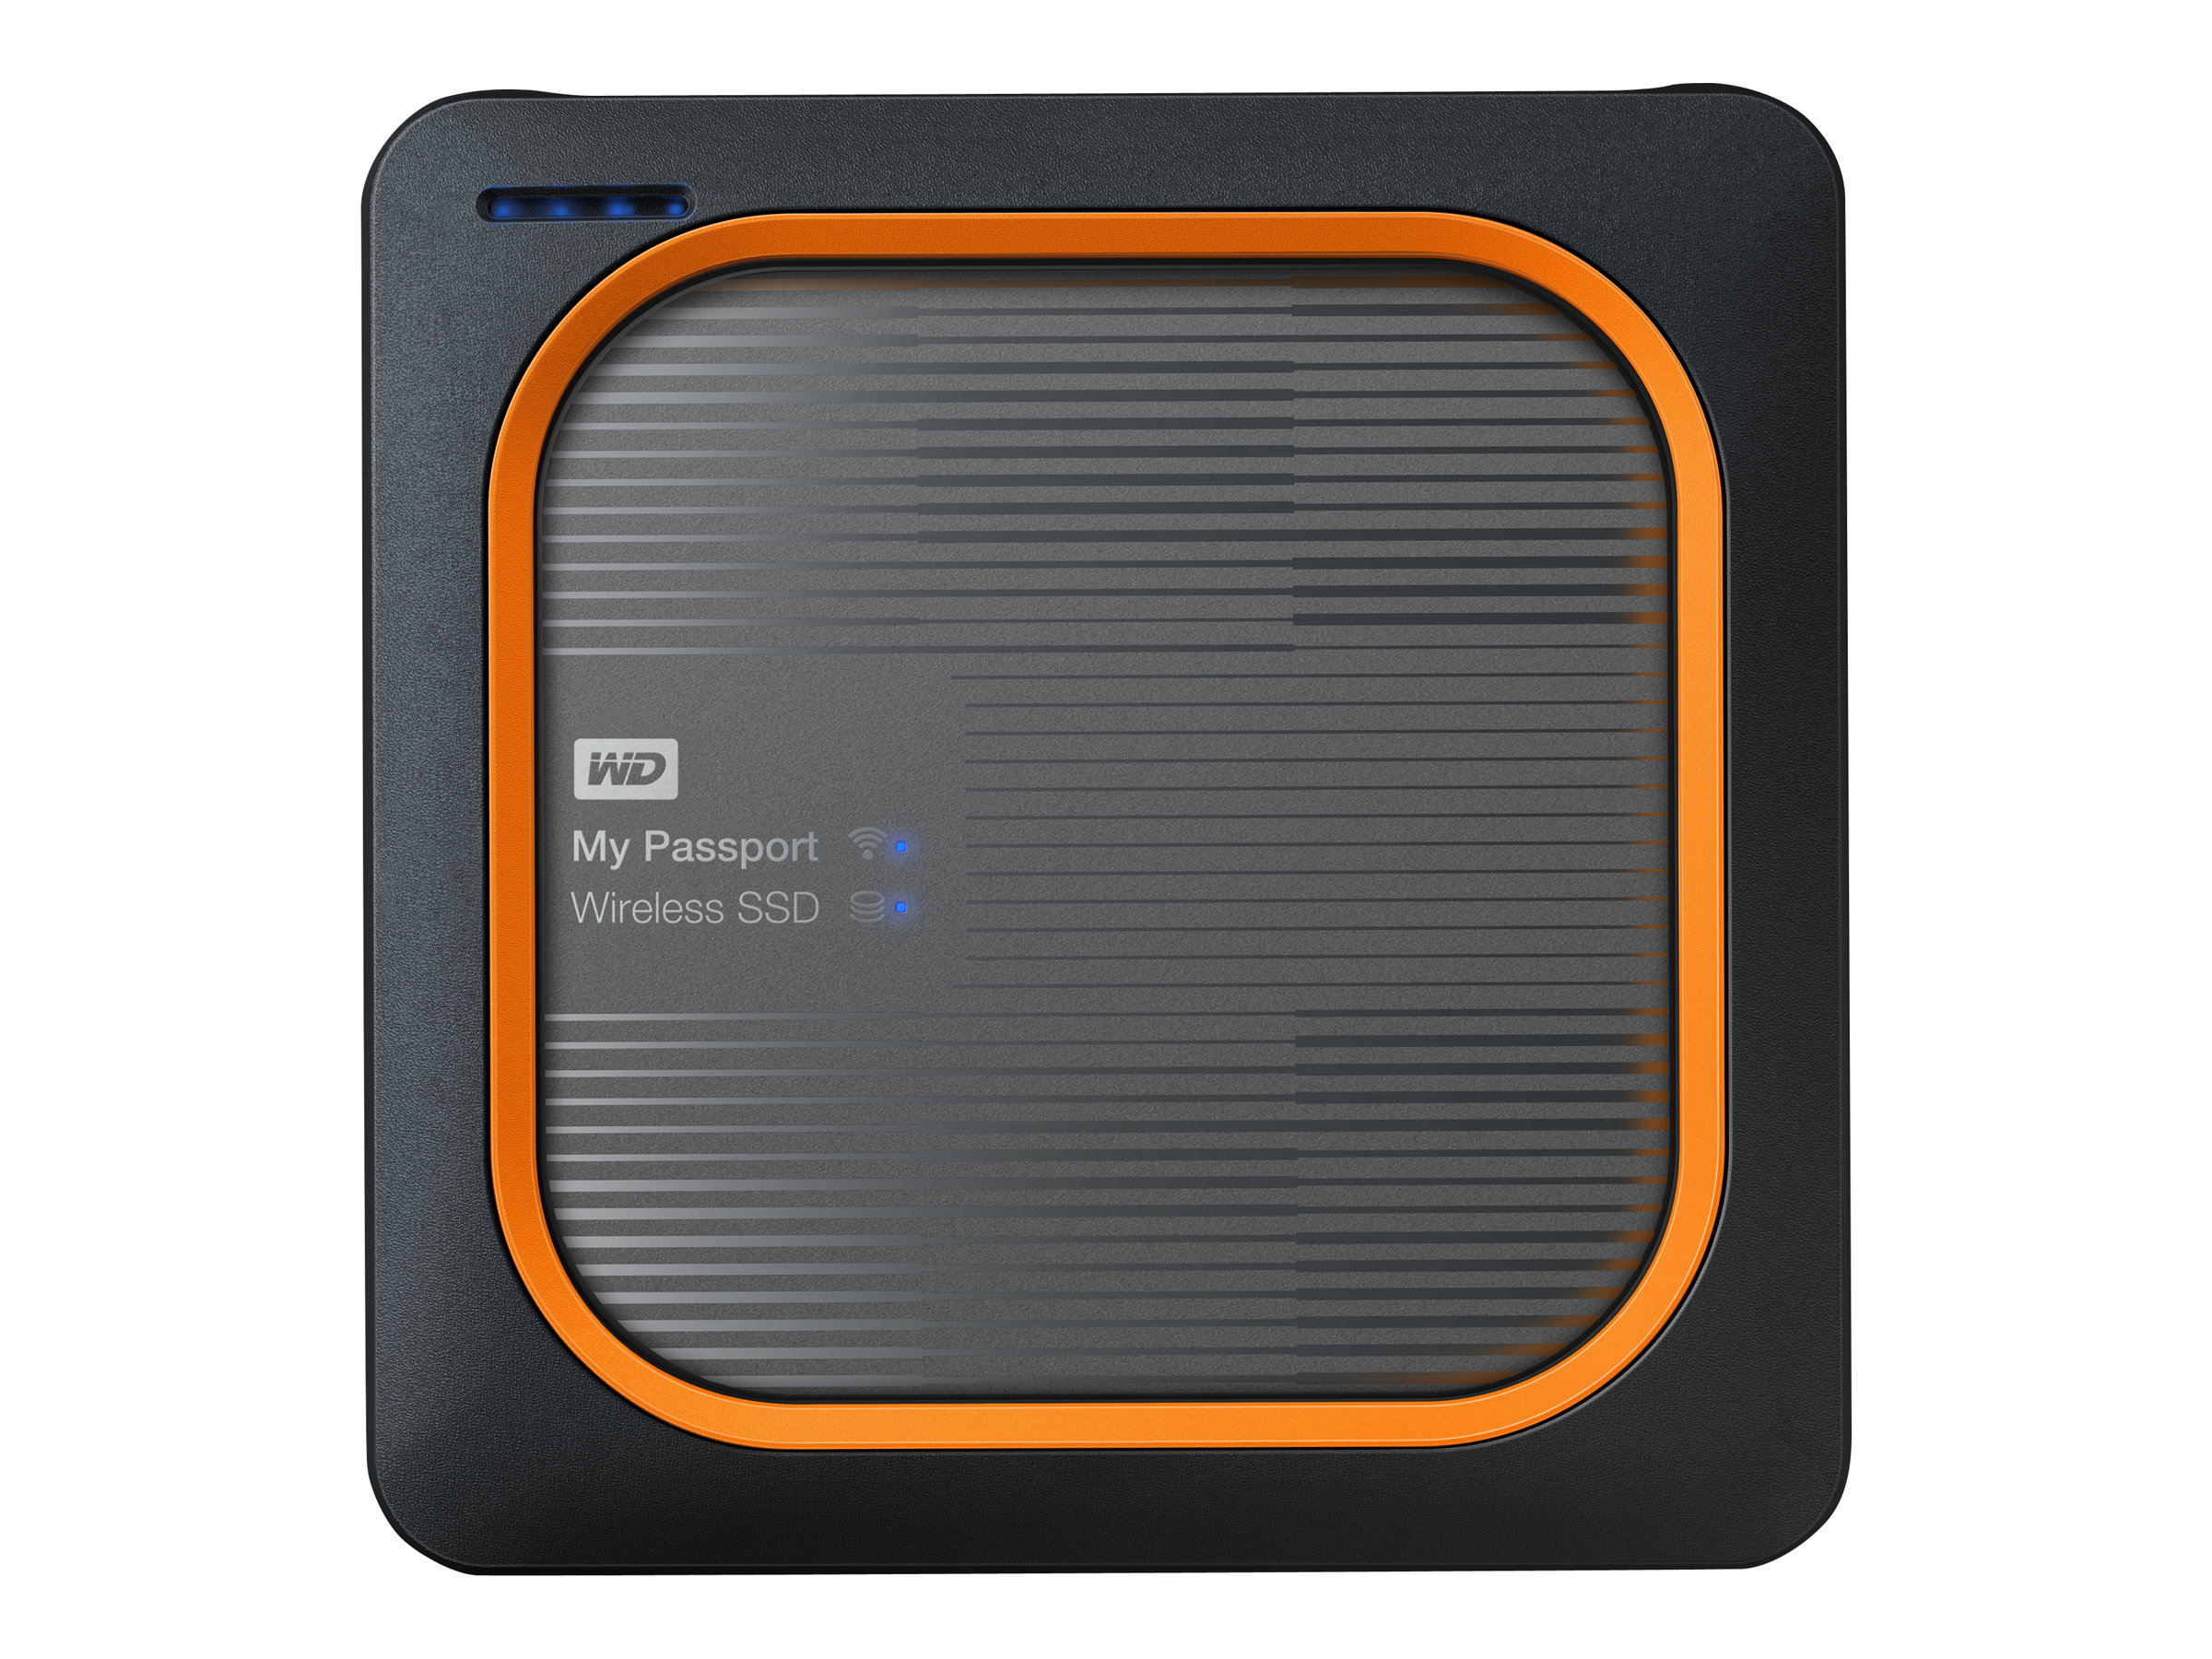 WD My Passport Wireless SSD WDBAMJ0010BGY - Mobiler Wireless-Speicher - 1 TB - SSD 1 TB x 1 - USB 3.0 / 802.11ac